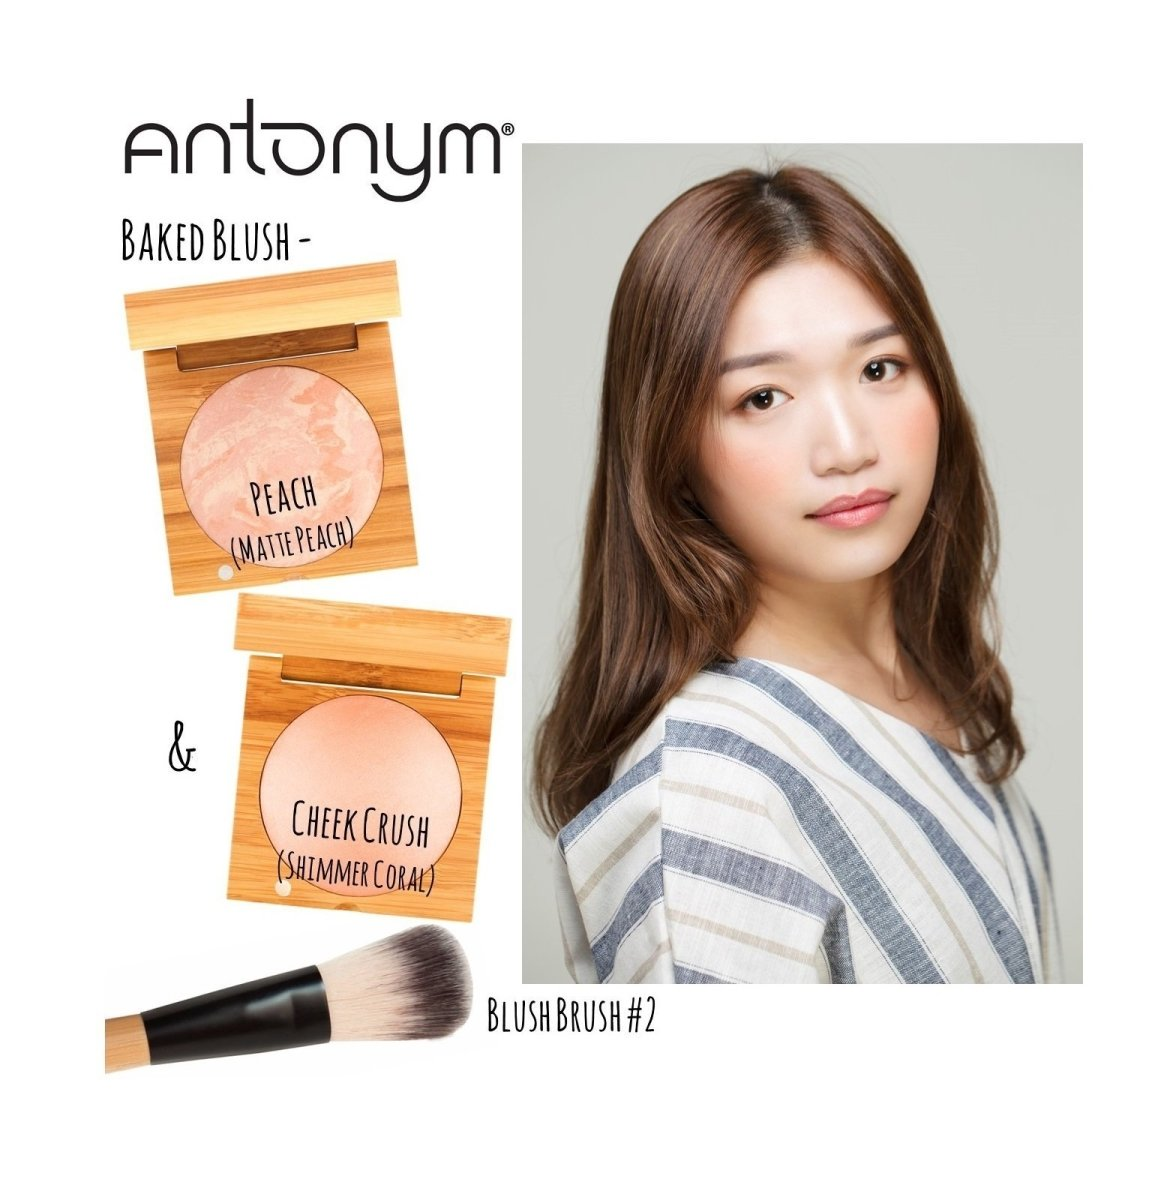 ANTONYM Organic Baked Highlighting Blush 有機烘焙亮彩胭脂 [6.5g] - Cheek Crush - MINT Organics